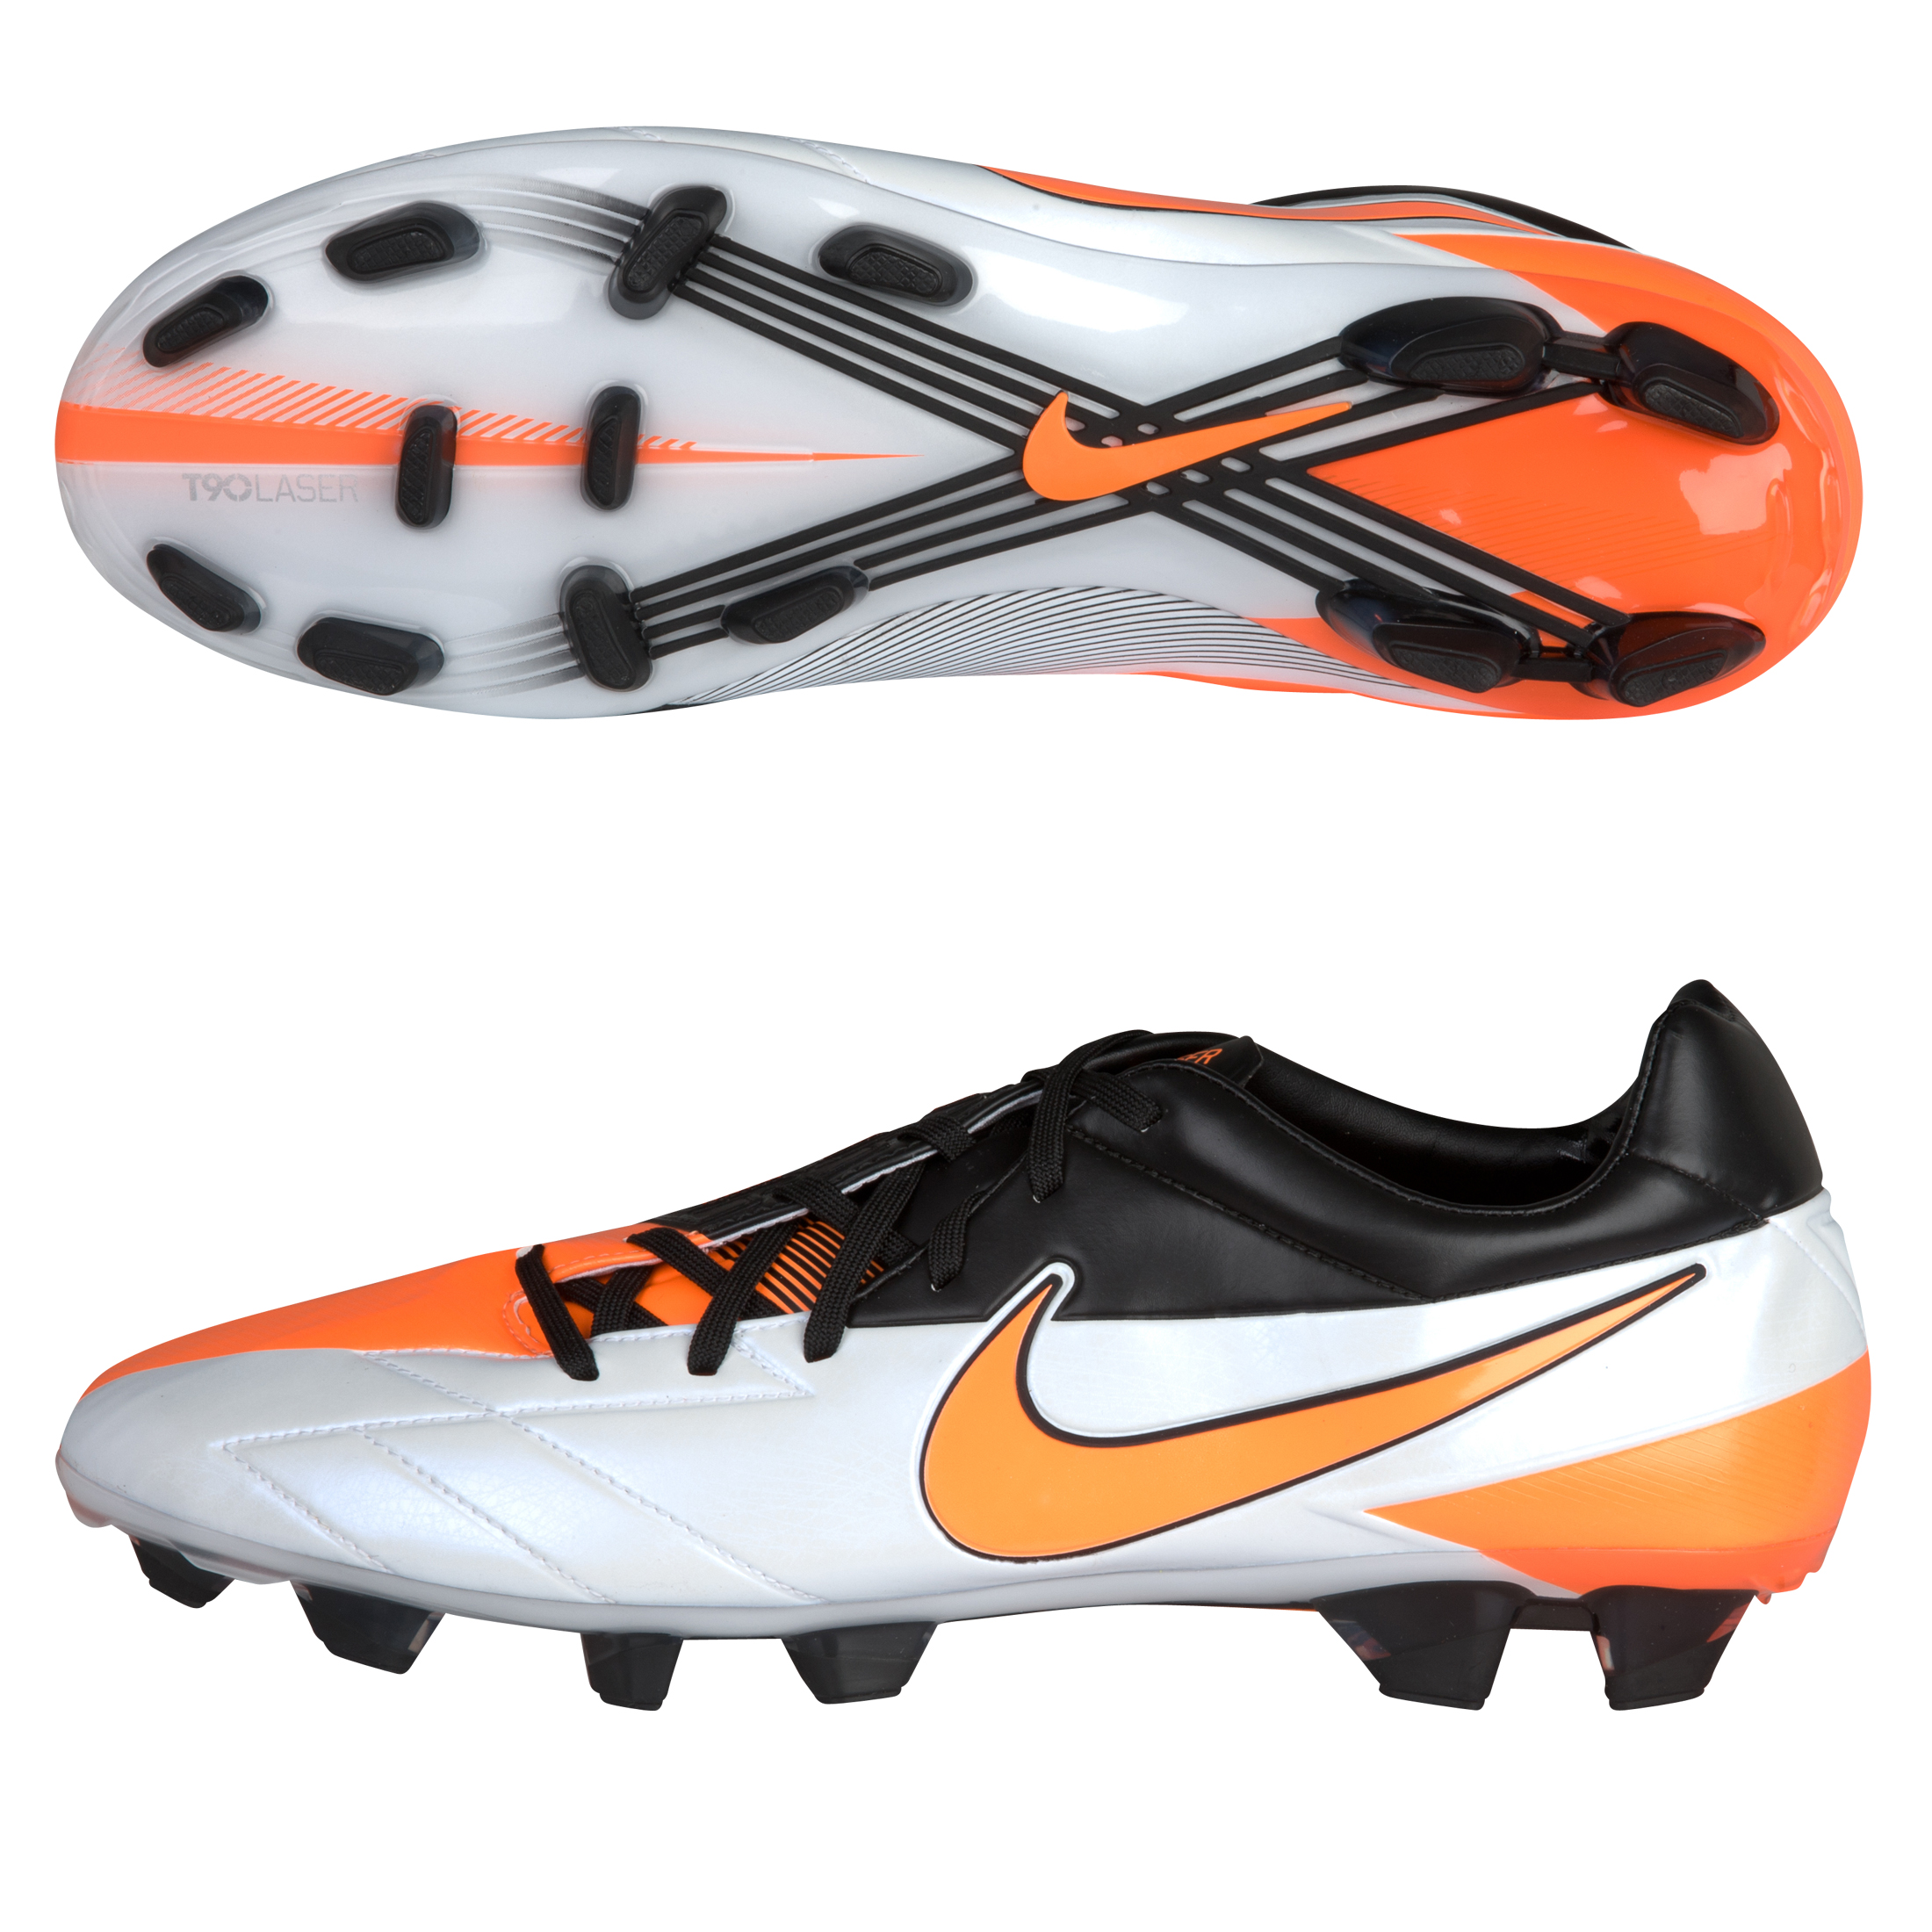 T90 Laser IV FG White/Total Orange/Black